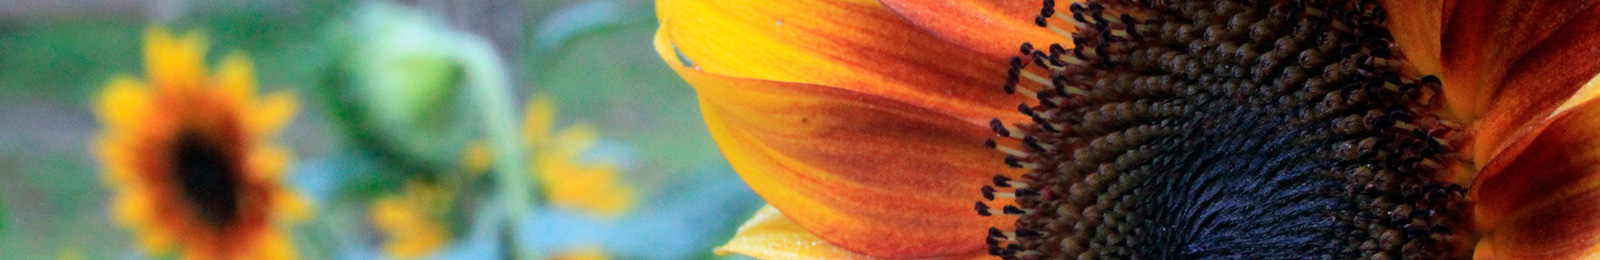 Sunflower: Sow and Grow Guide